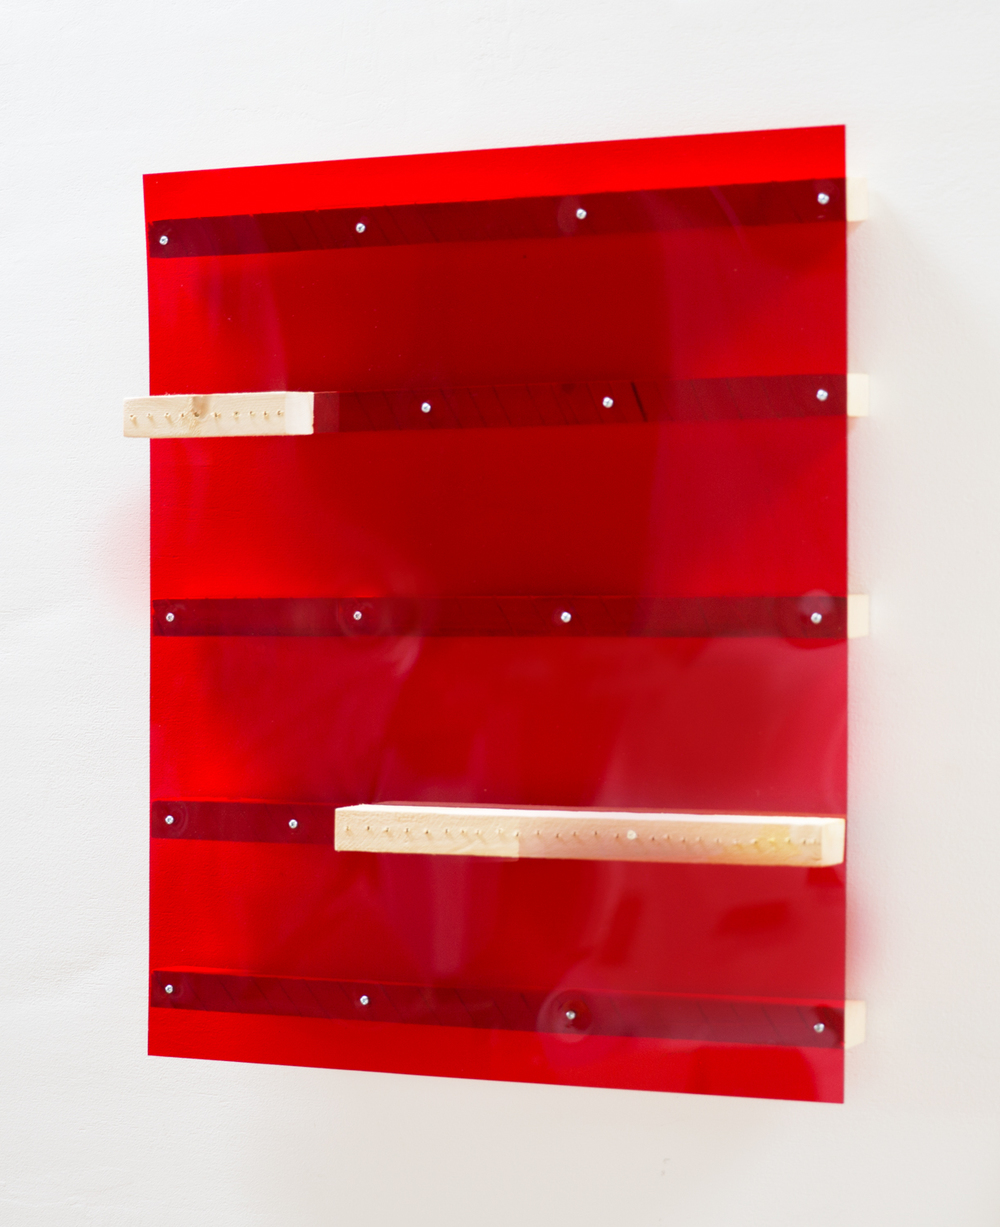 Kishio Suga Layered Edge of Space 1994 Plastic and wood 25 ⅝ x 21 ⅝ x 3 in KS015